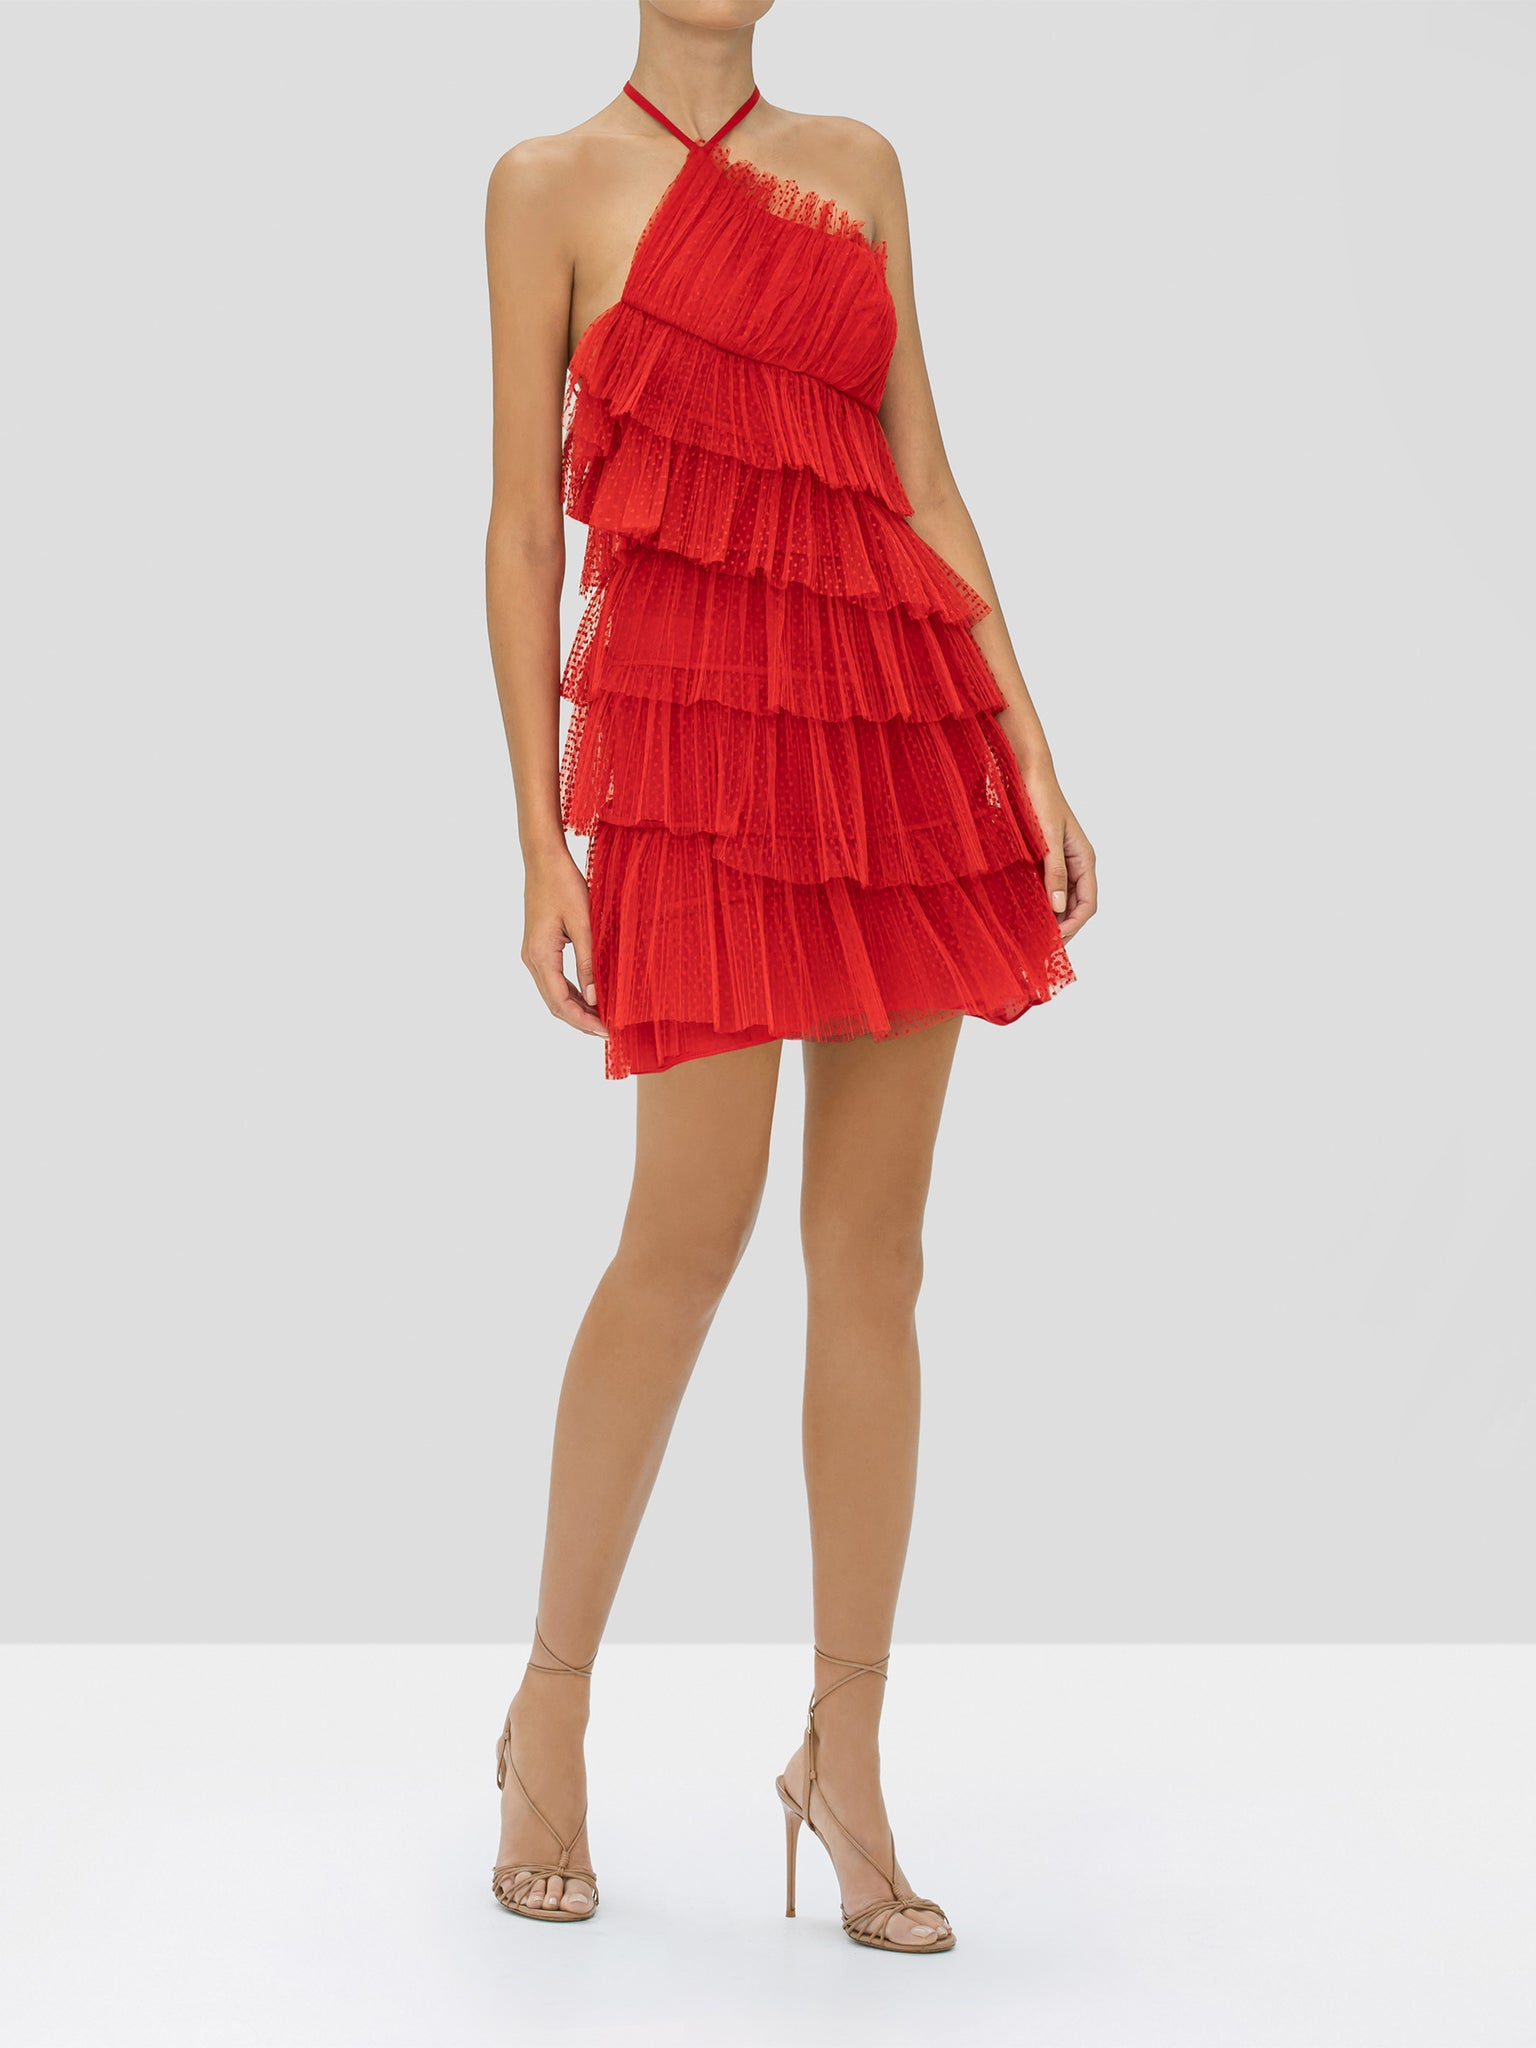 Alexis Raina Dress in Cherry from our Holiday 2019 Ready To Wear Collection